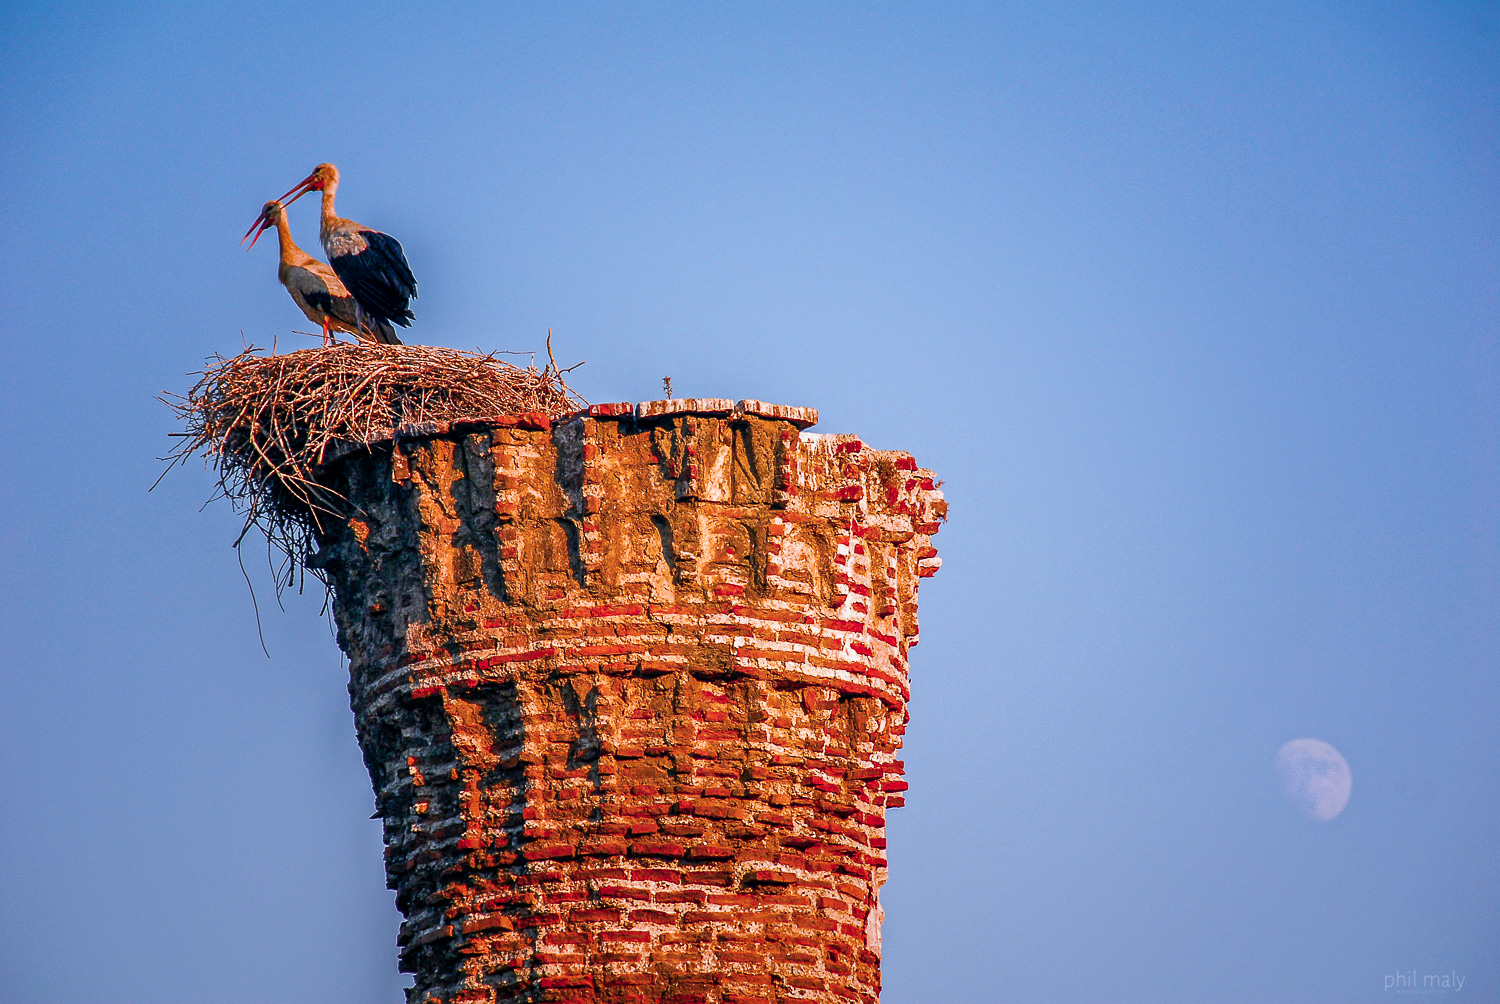 Storks on an abandoned chimney in Turkey